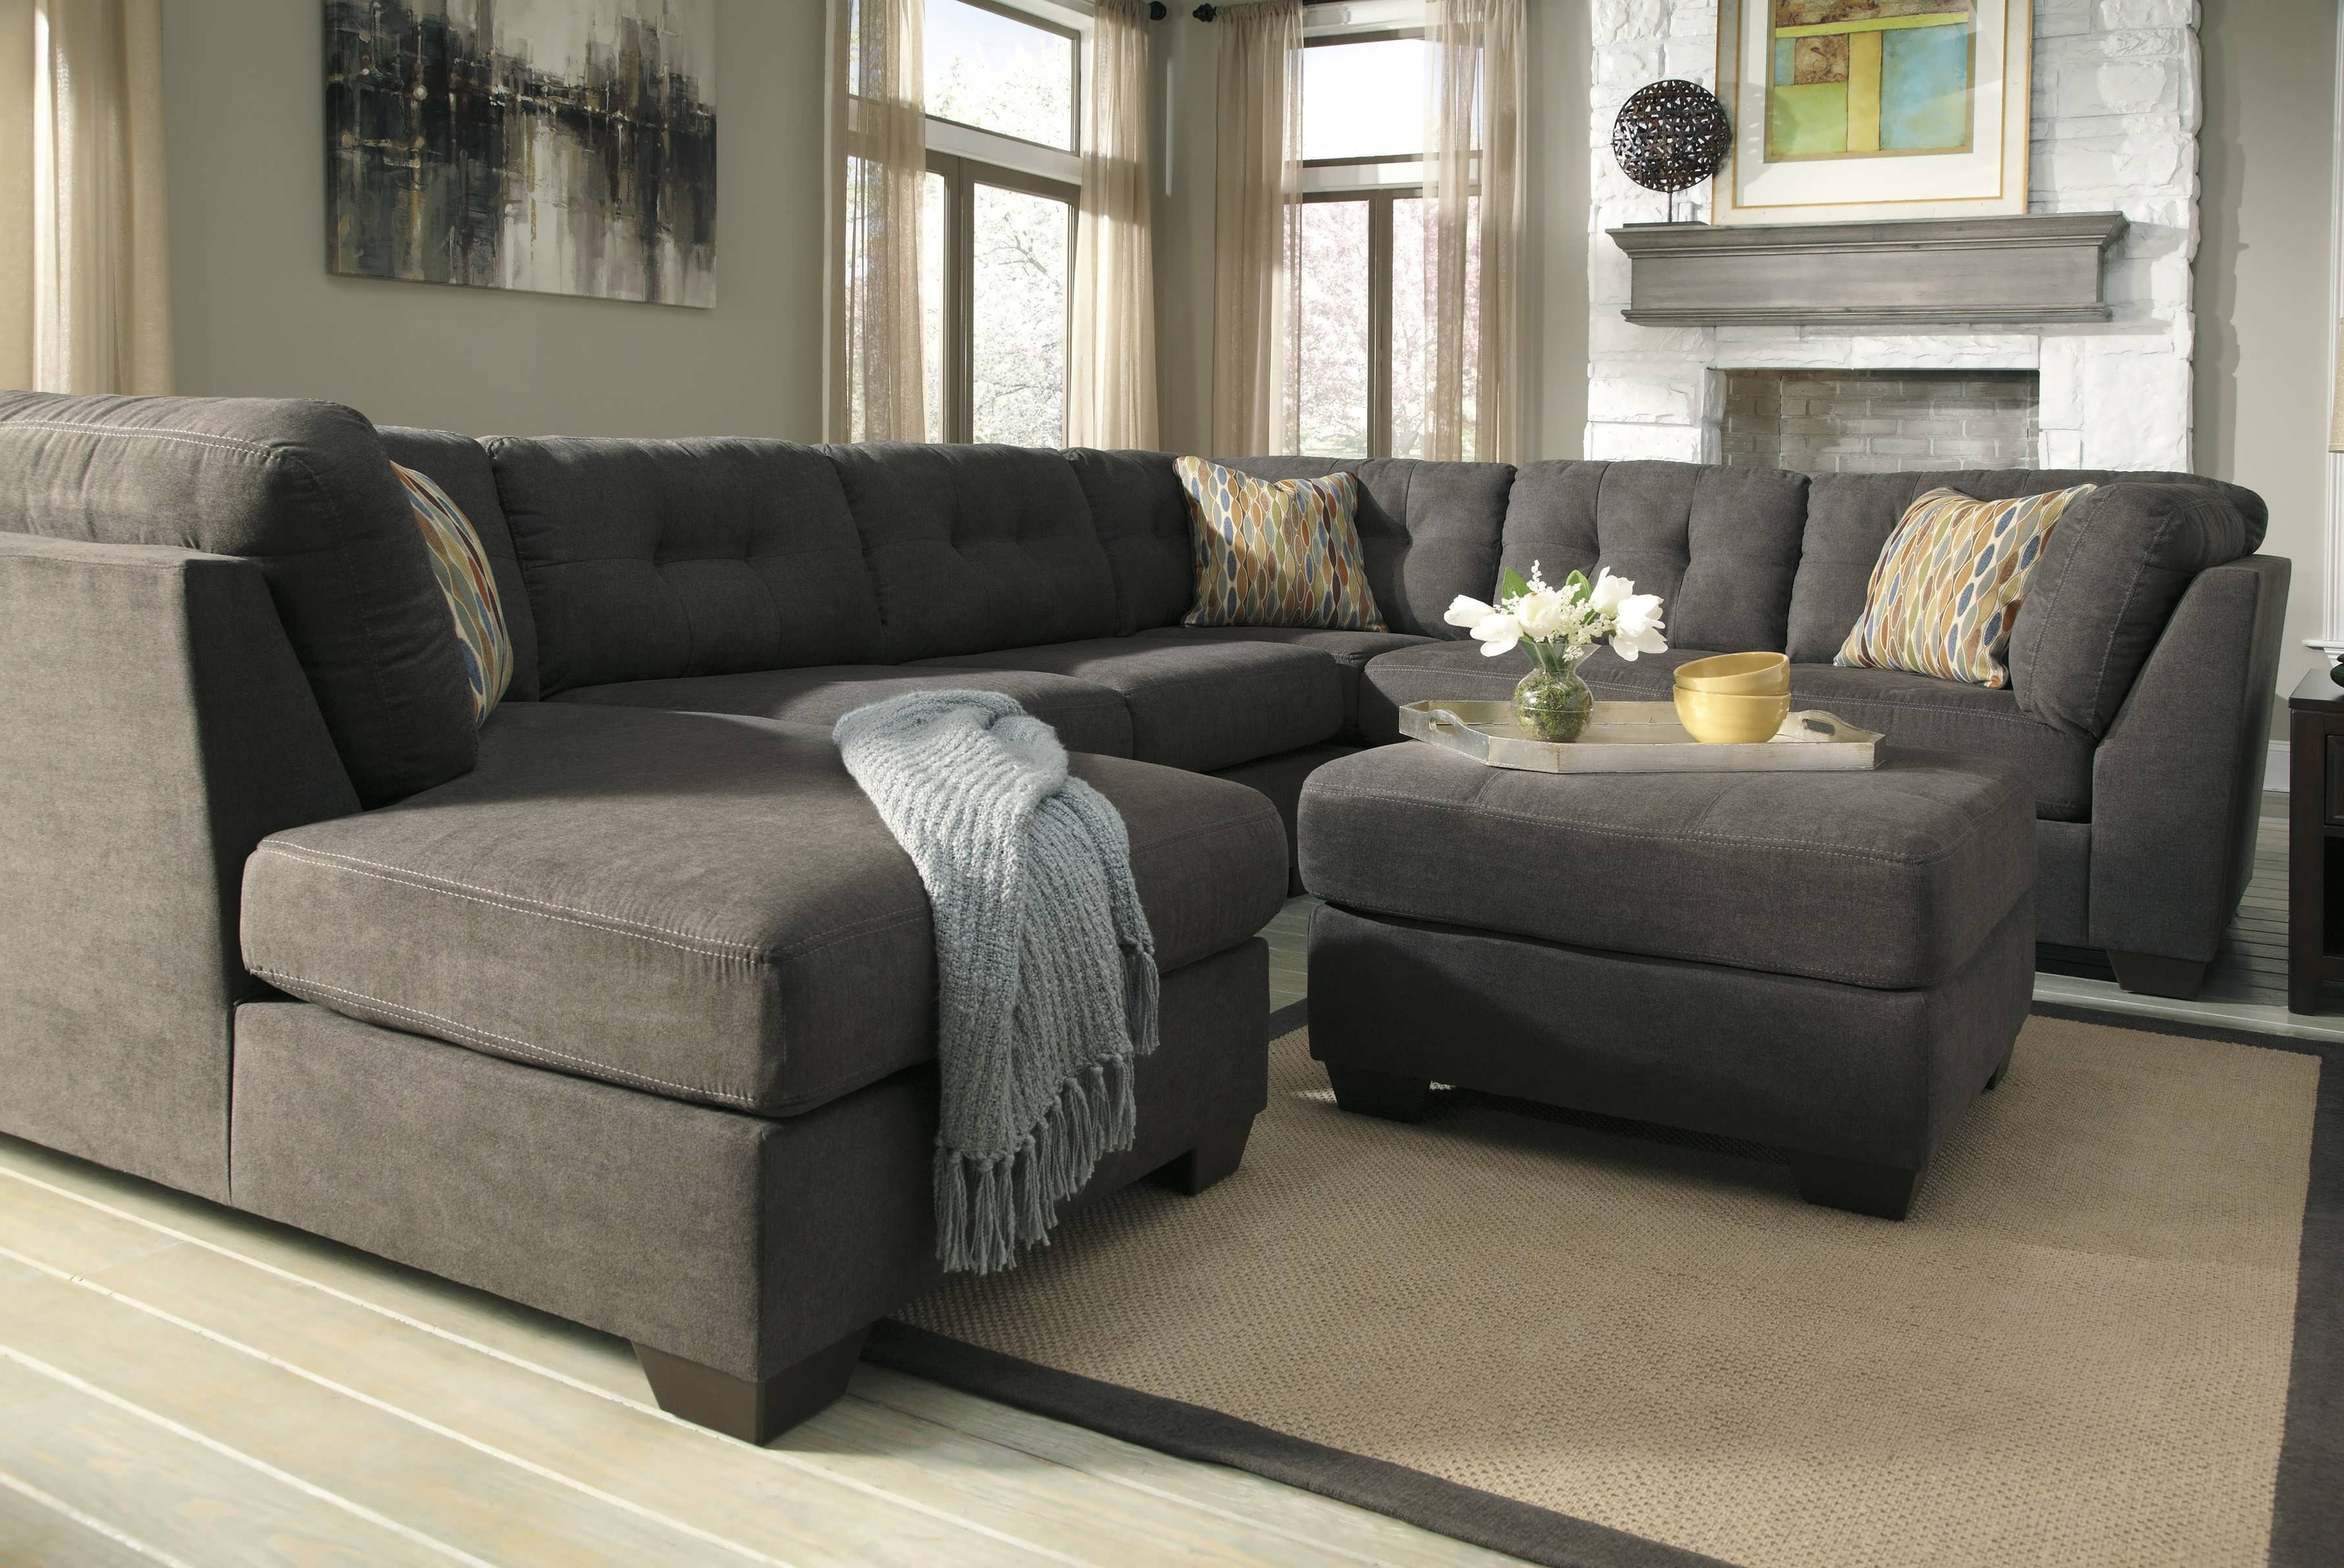 Most Recently Released Sofa : Grey Sectionals For Sale Grey Chaise Sofa Dark Grey Within Grey Chaise Sectionals (View 10 of 15)